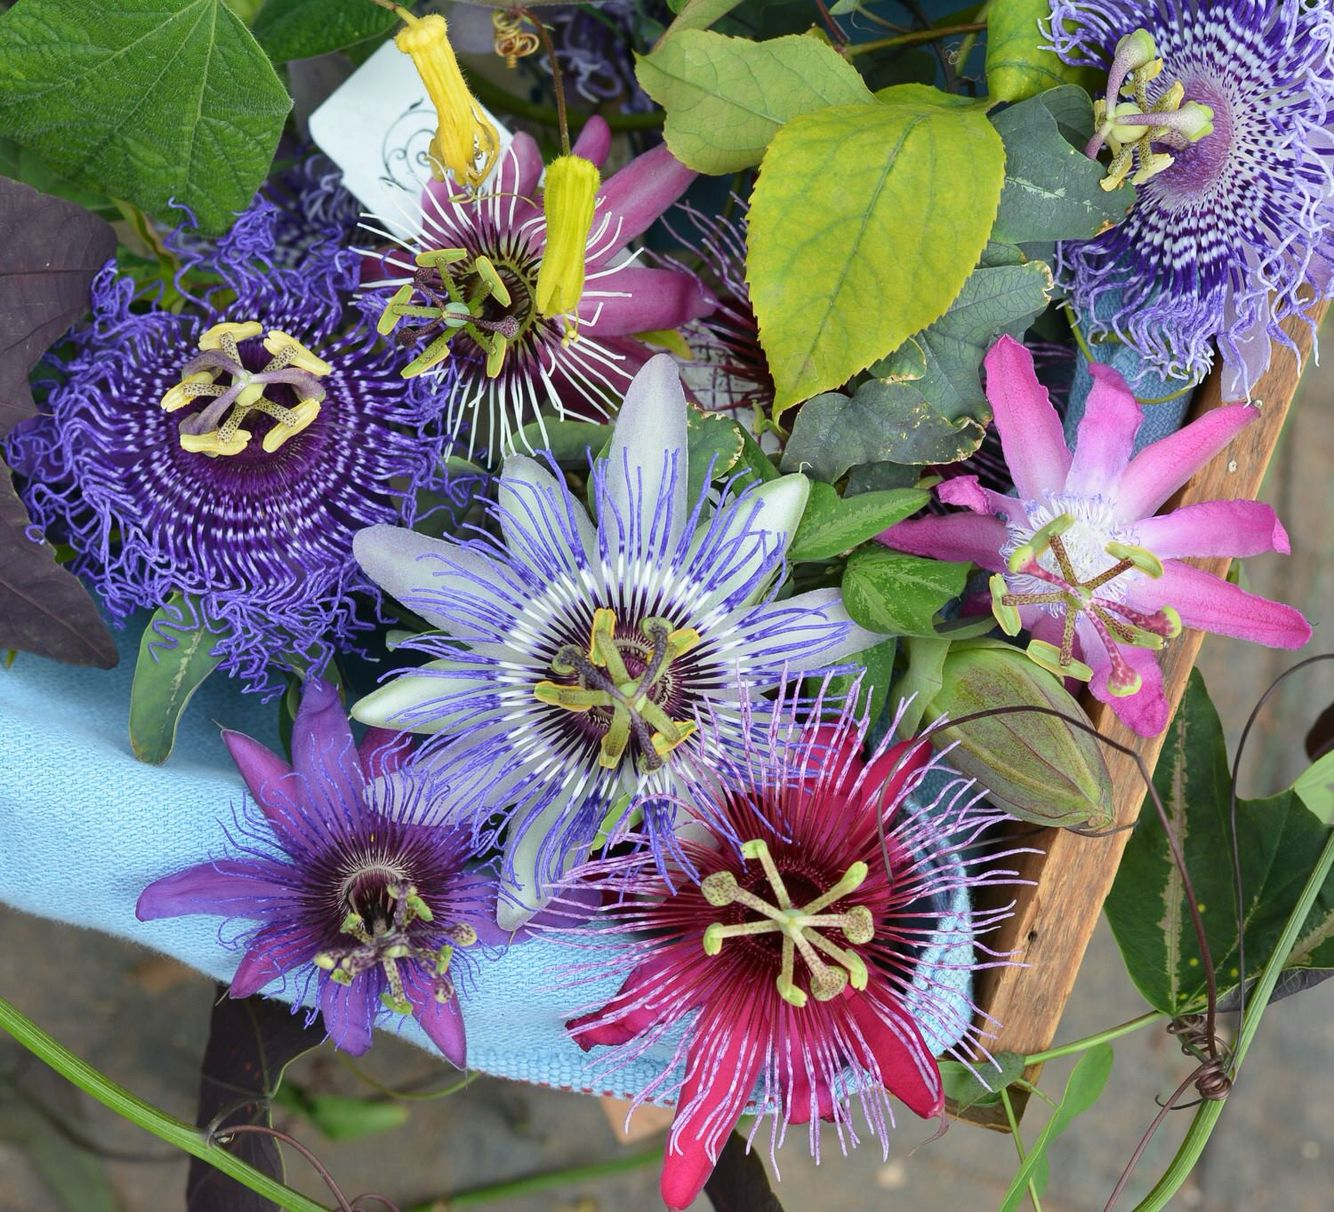 Patrick Worley S Outstanding Hybrid Of The Passion Fruit Vine Has Shiny Bright Green Slightly Crinkled Leaves 2 I Plants Flower Arrangements Container Plants